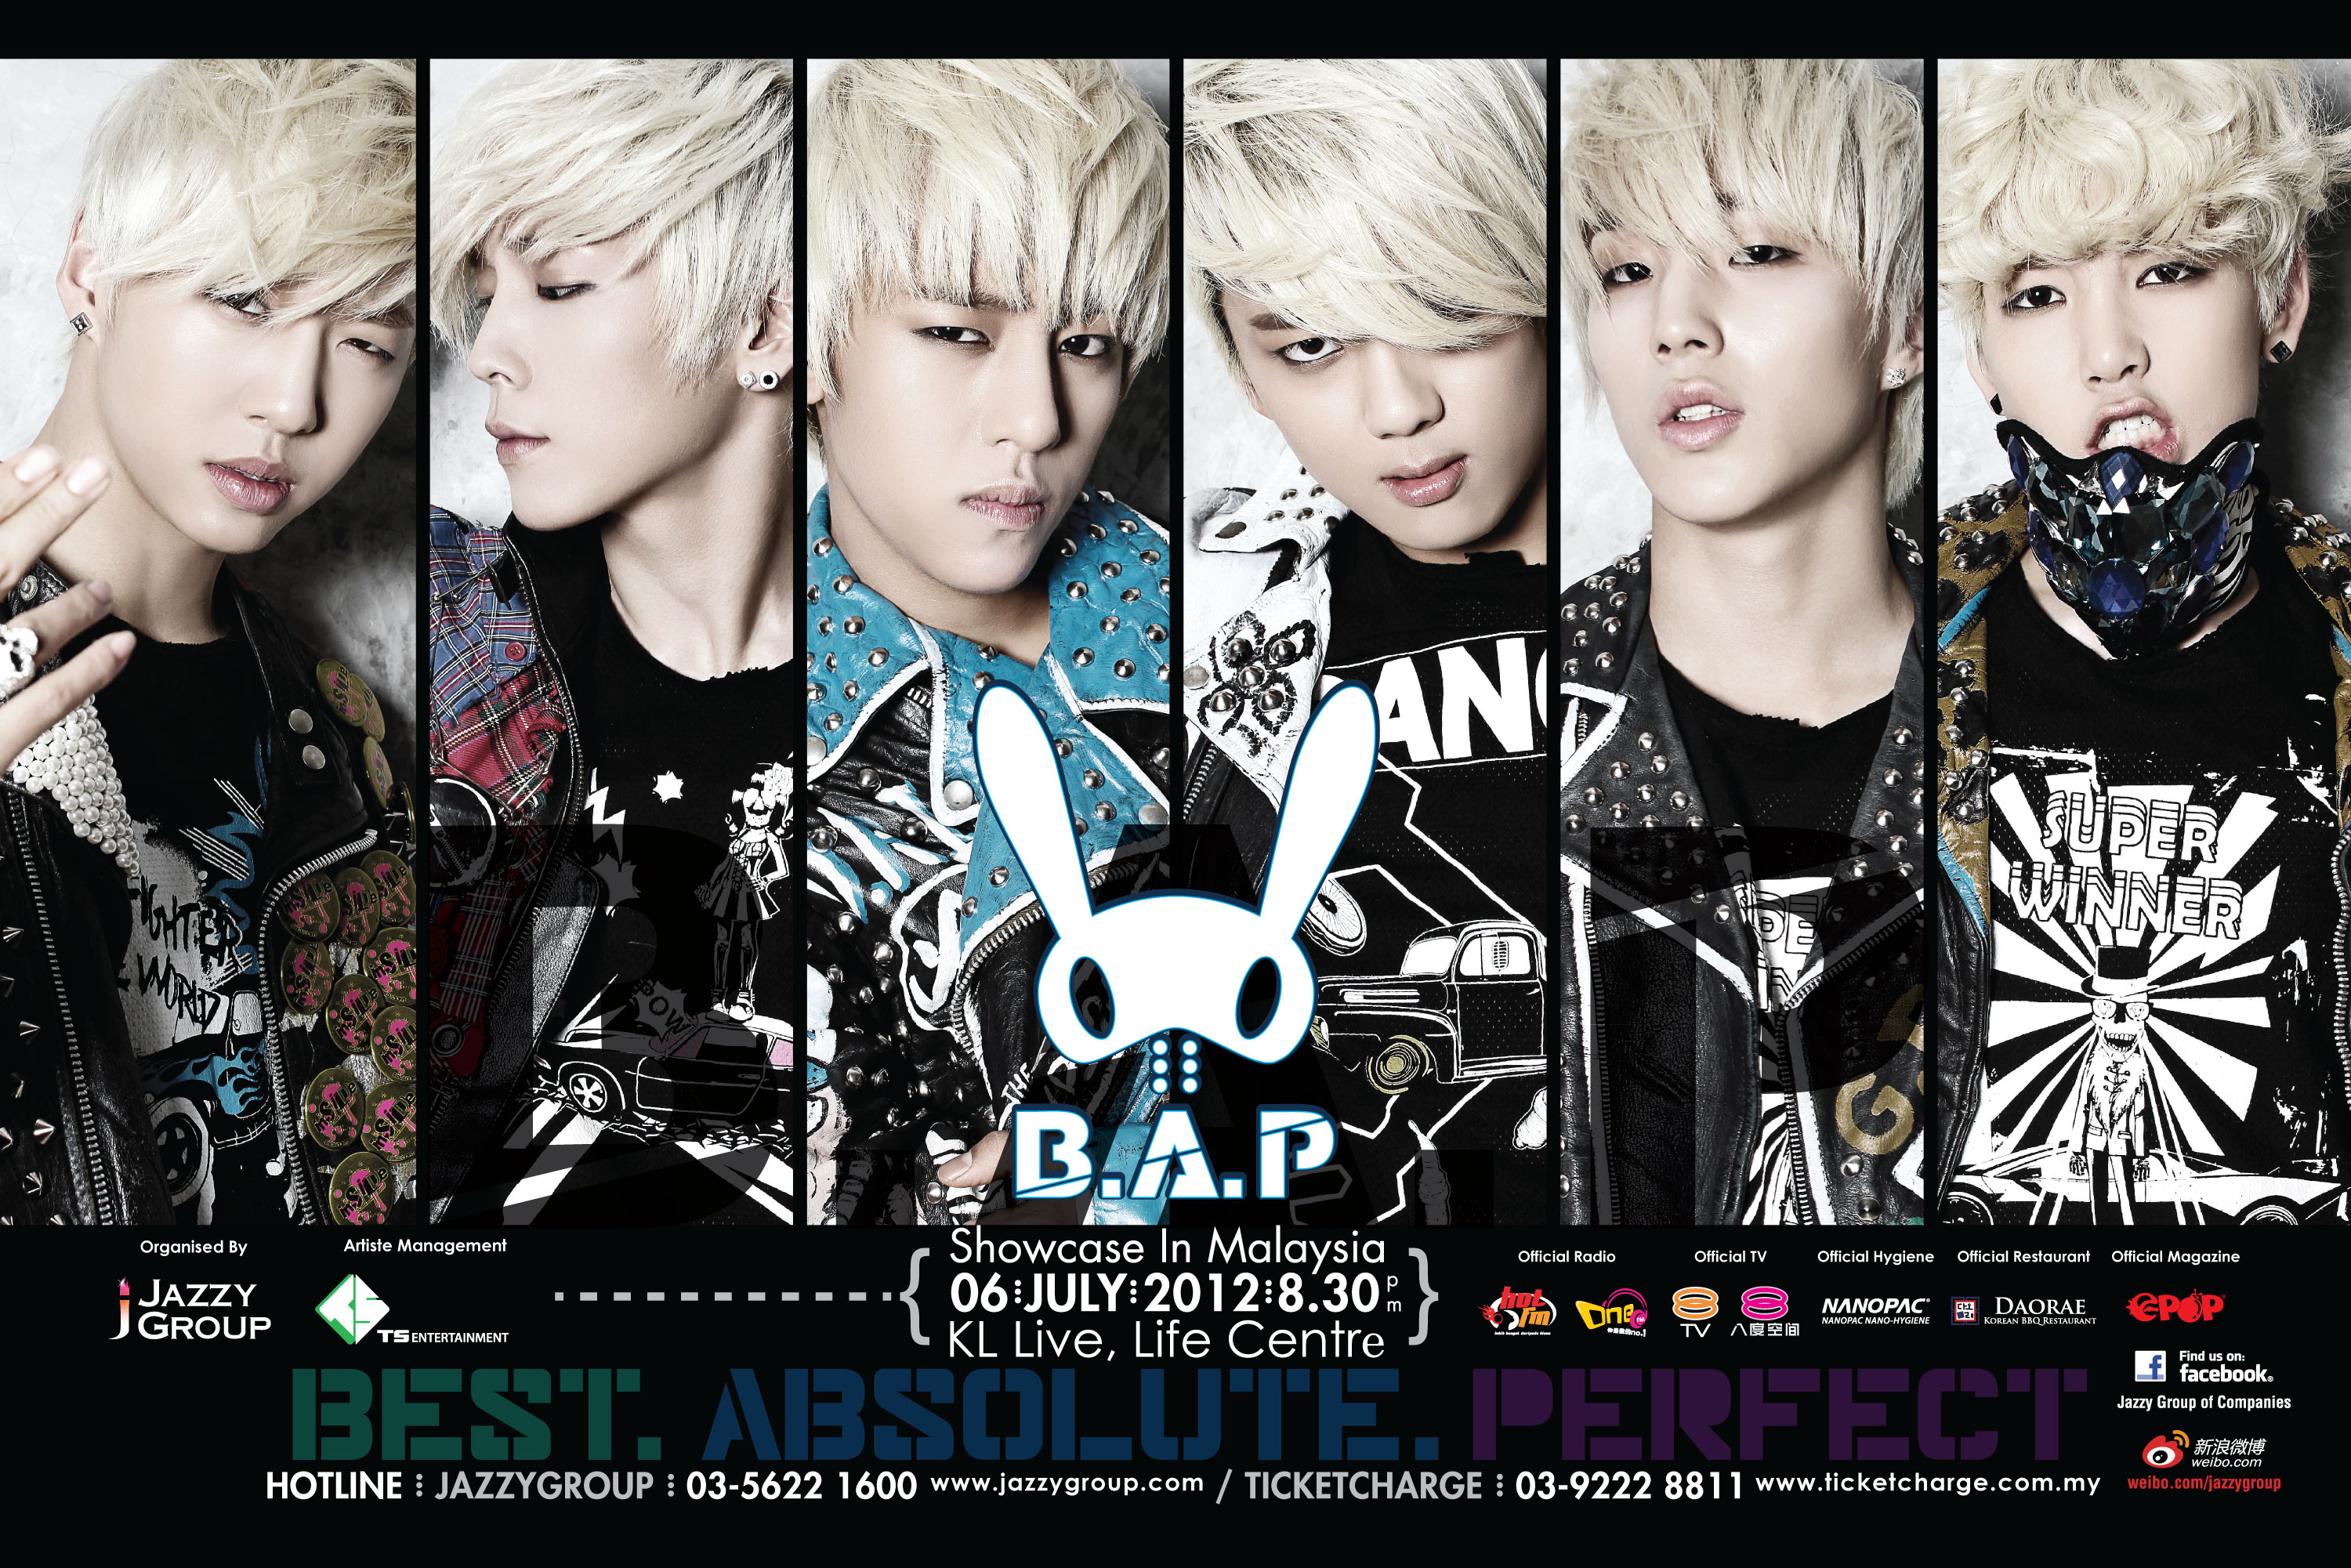 B.A.P To Hold First Showcase in Malaysia